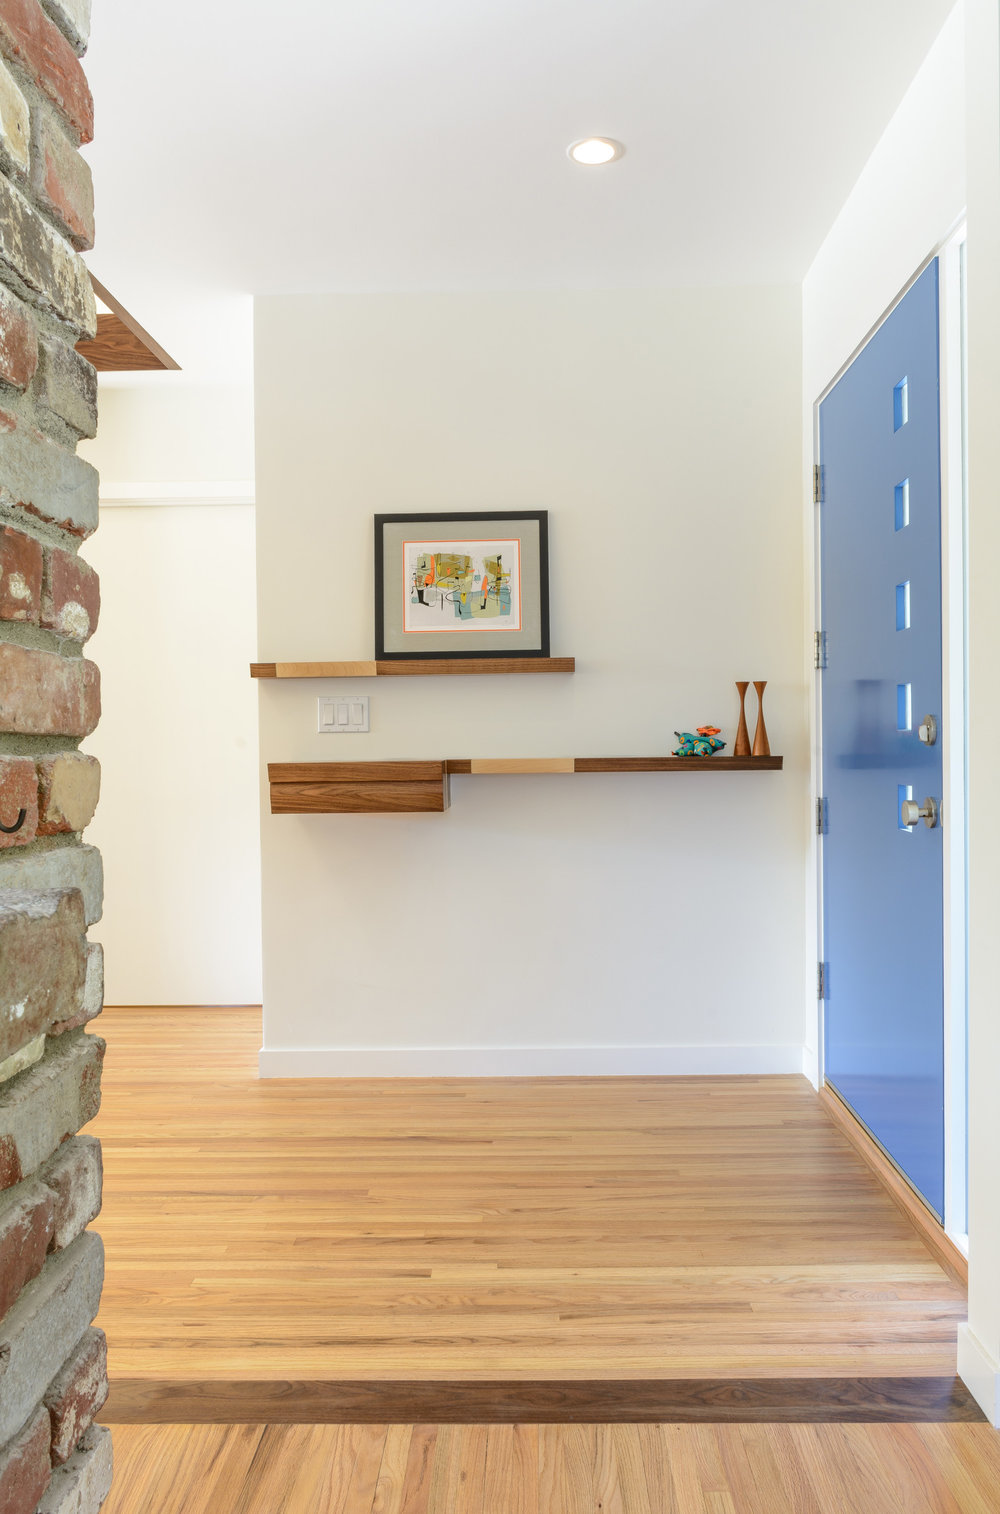 A continued welcome: bright open foyer with white walls, recessed lighting, the blue modern front door with square lites, and walnut and maple floating shelves and accent floor pieces